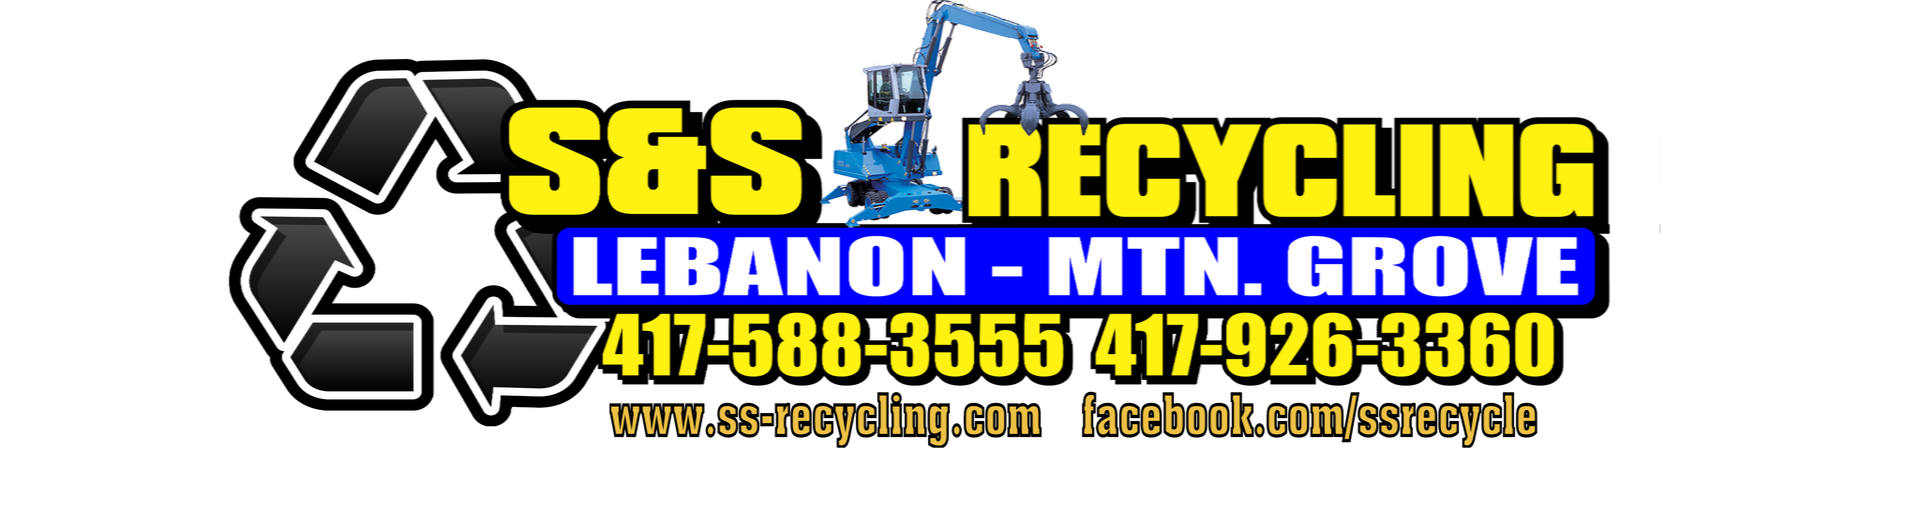 S&S Recycling